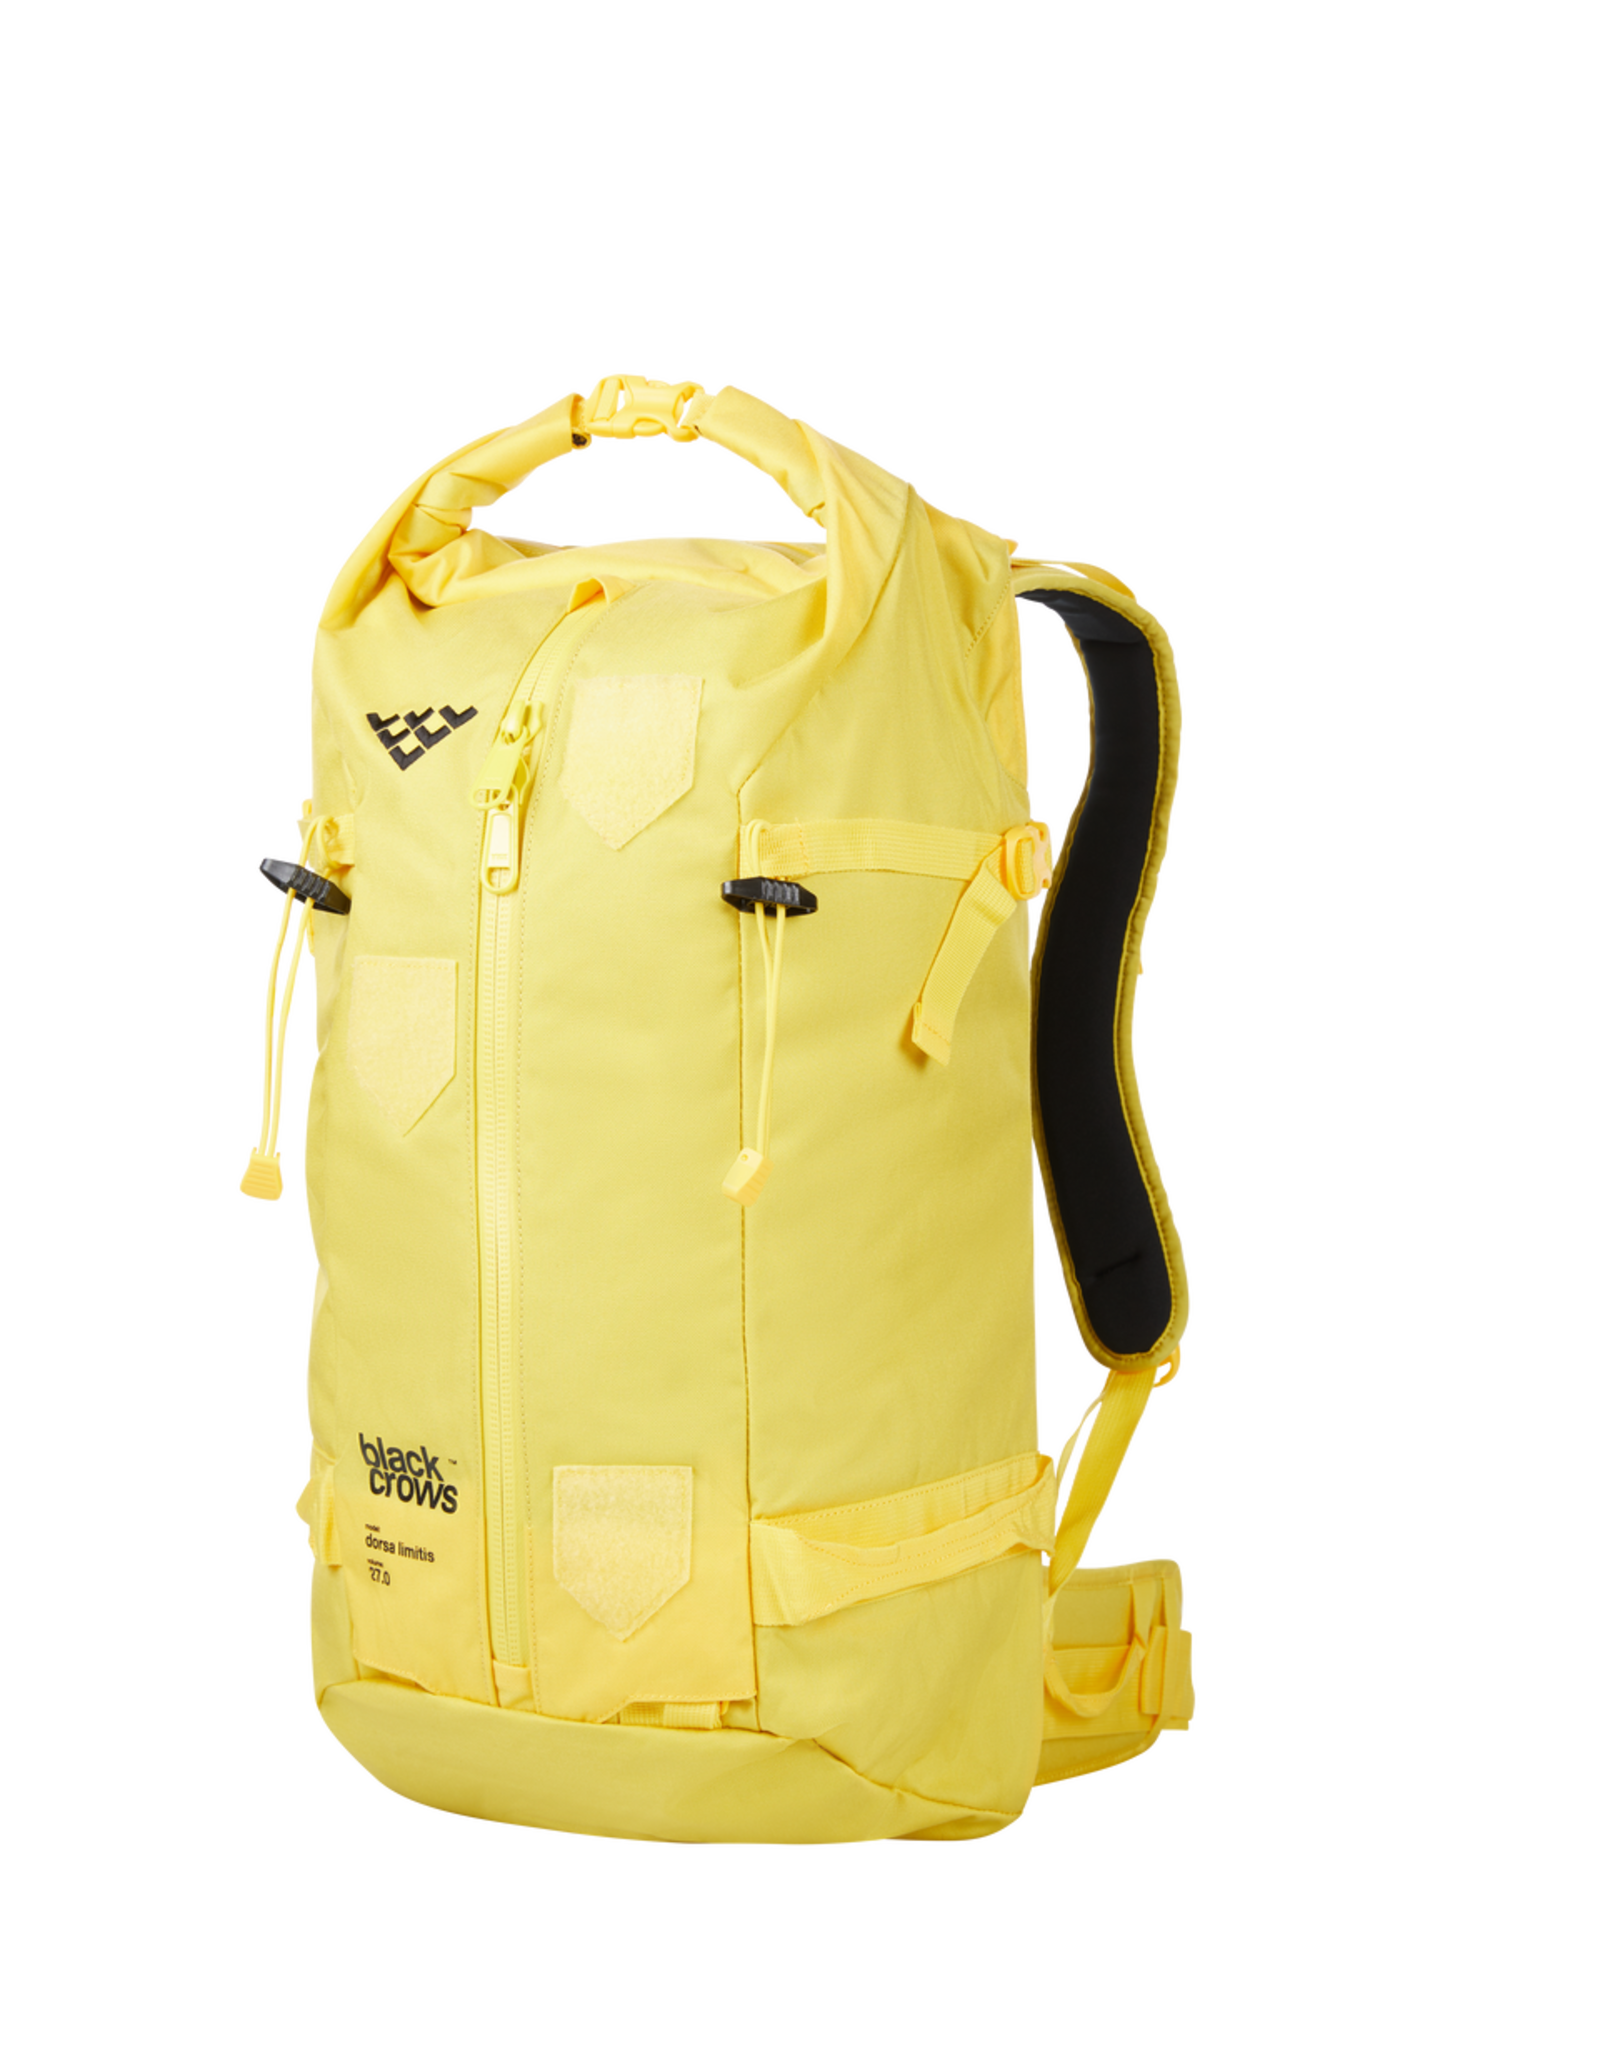 BLACK CROWS BLACK CROWS Backpack DORSA 27 with Patches  - Yellow